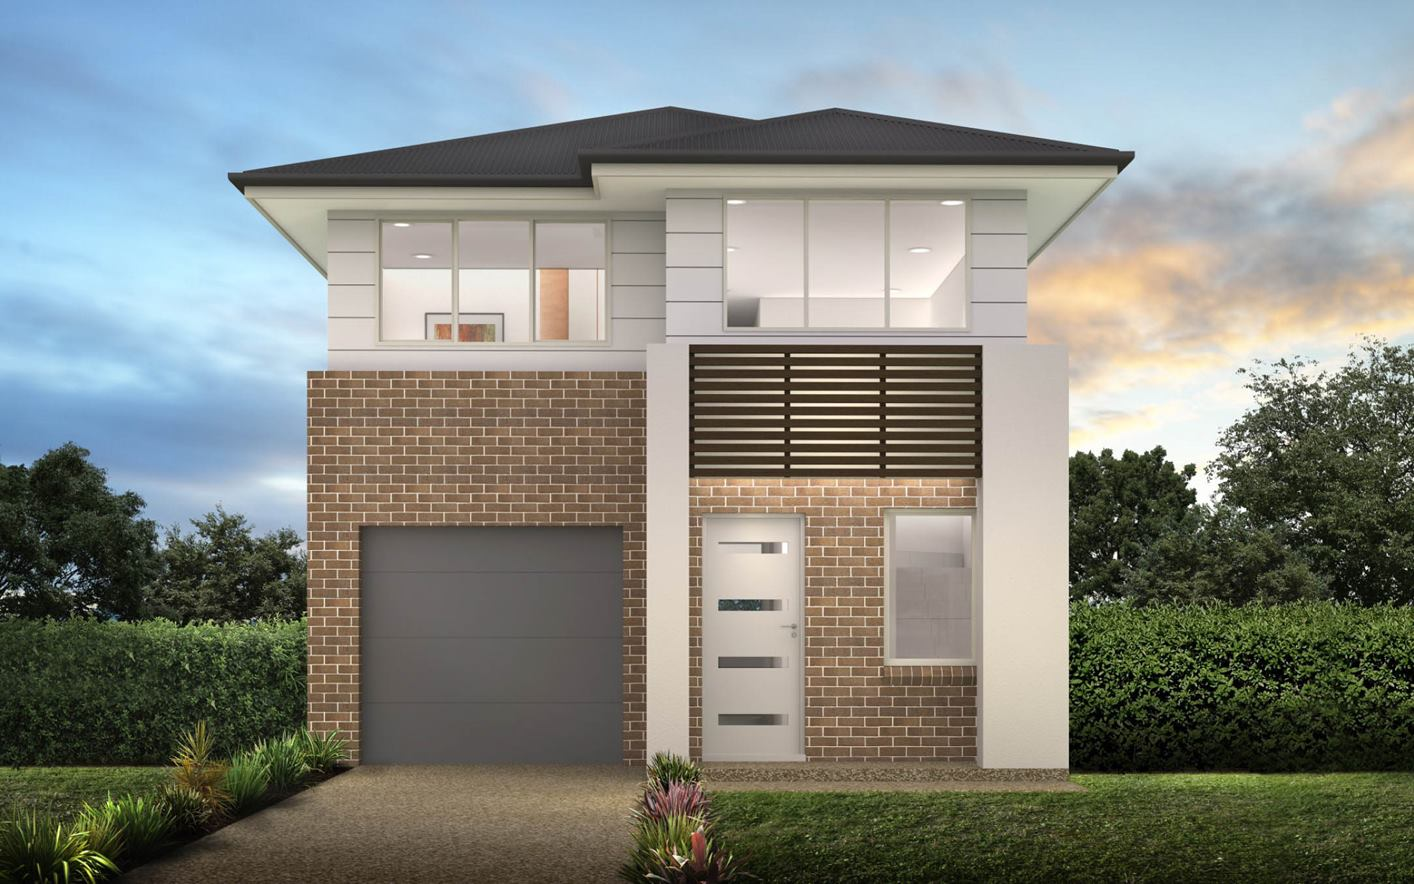 Thrive Homes Rayna Home Design with Vogue Facade